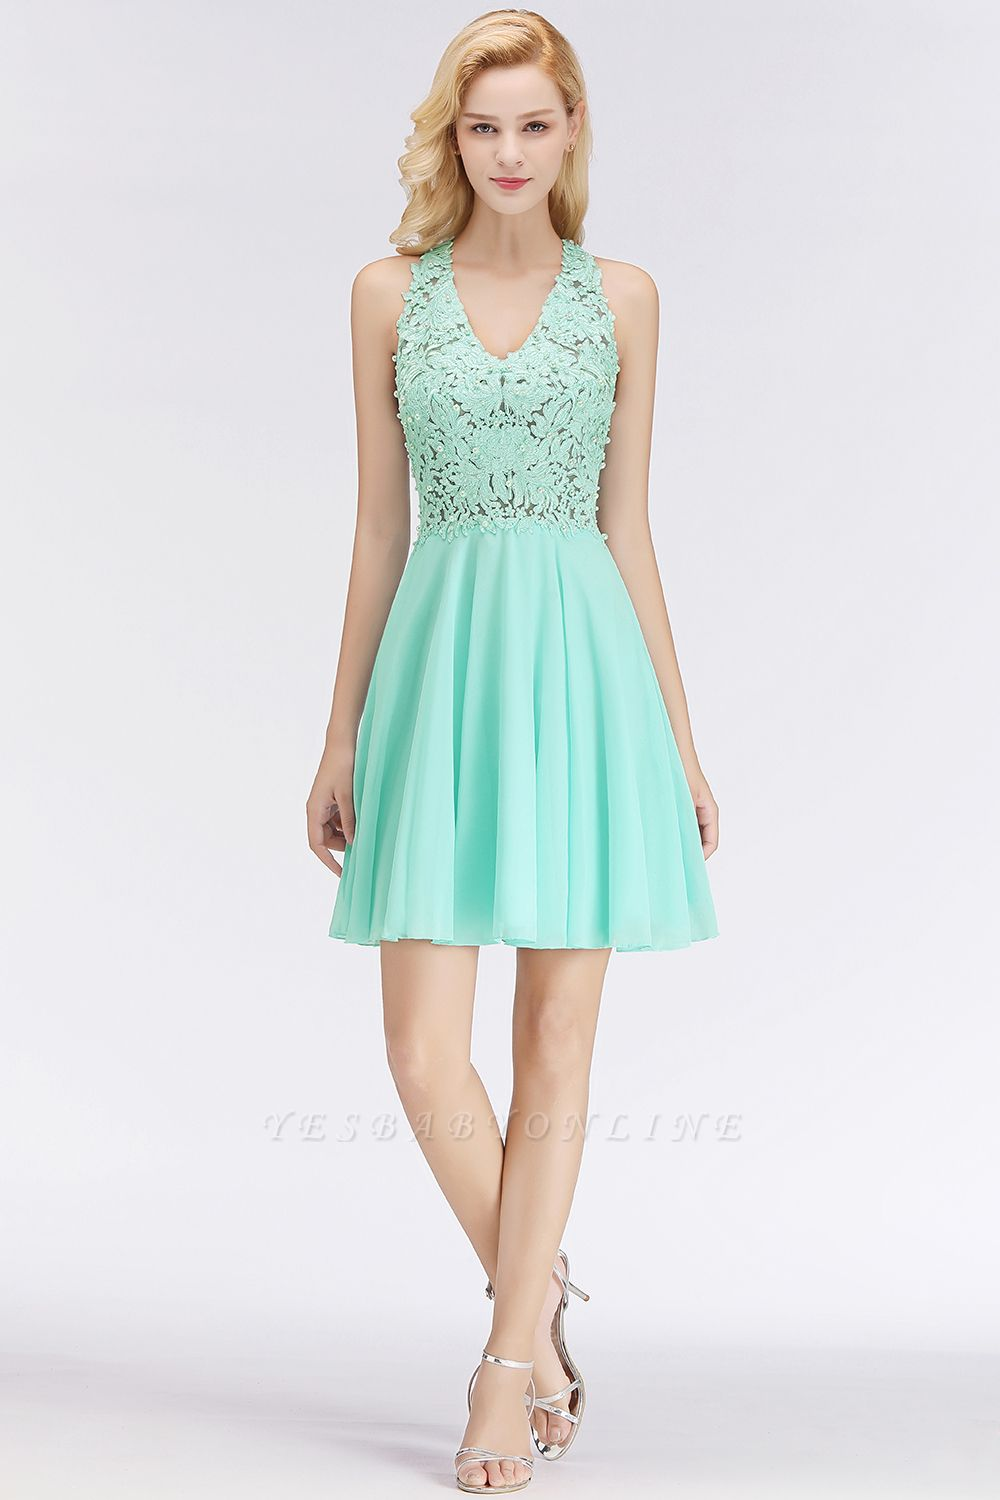 Cheap A-line V-neck Sleeveless Short Appliques Chiffon Homecoming Dress in Stock